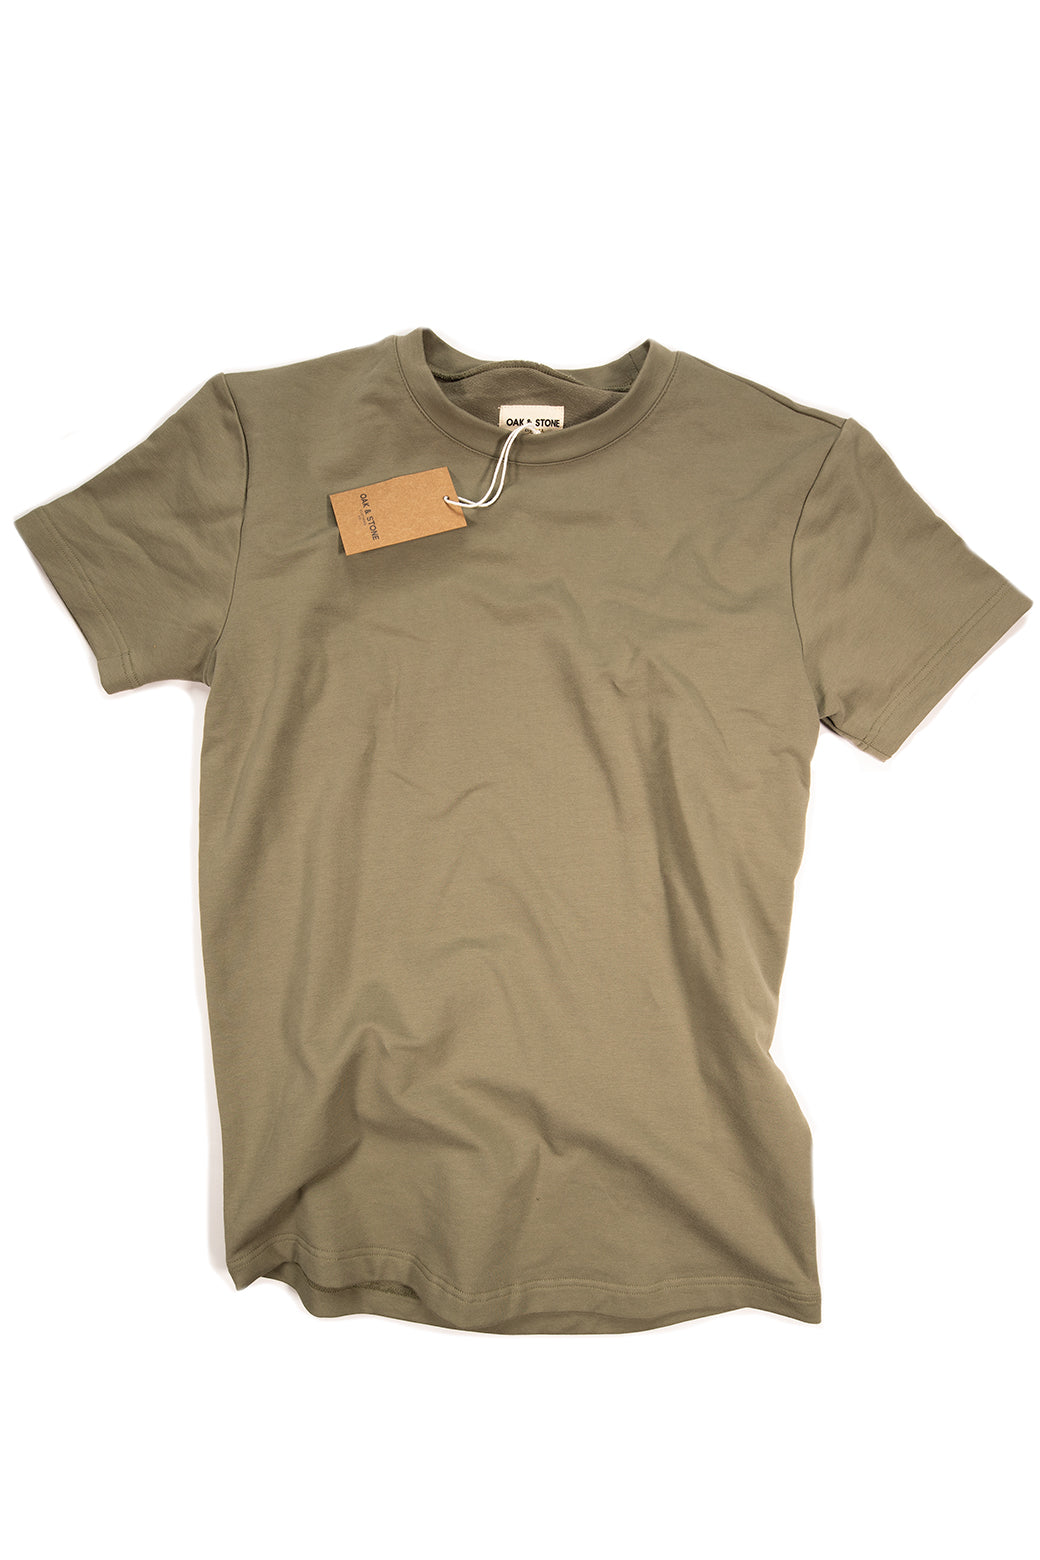 The Classic S/S Tee - Olive - Oak & Stone Clothing Co.